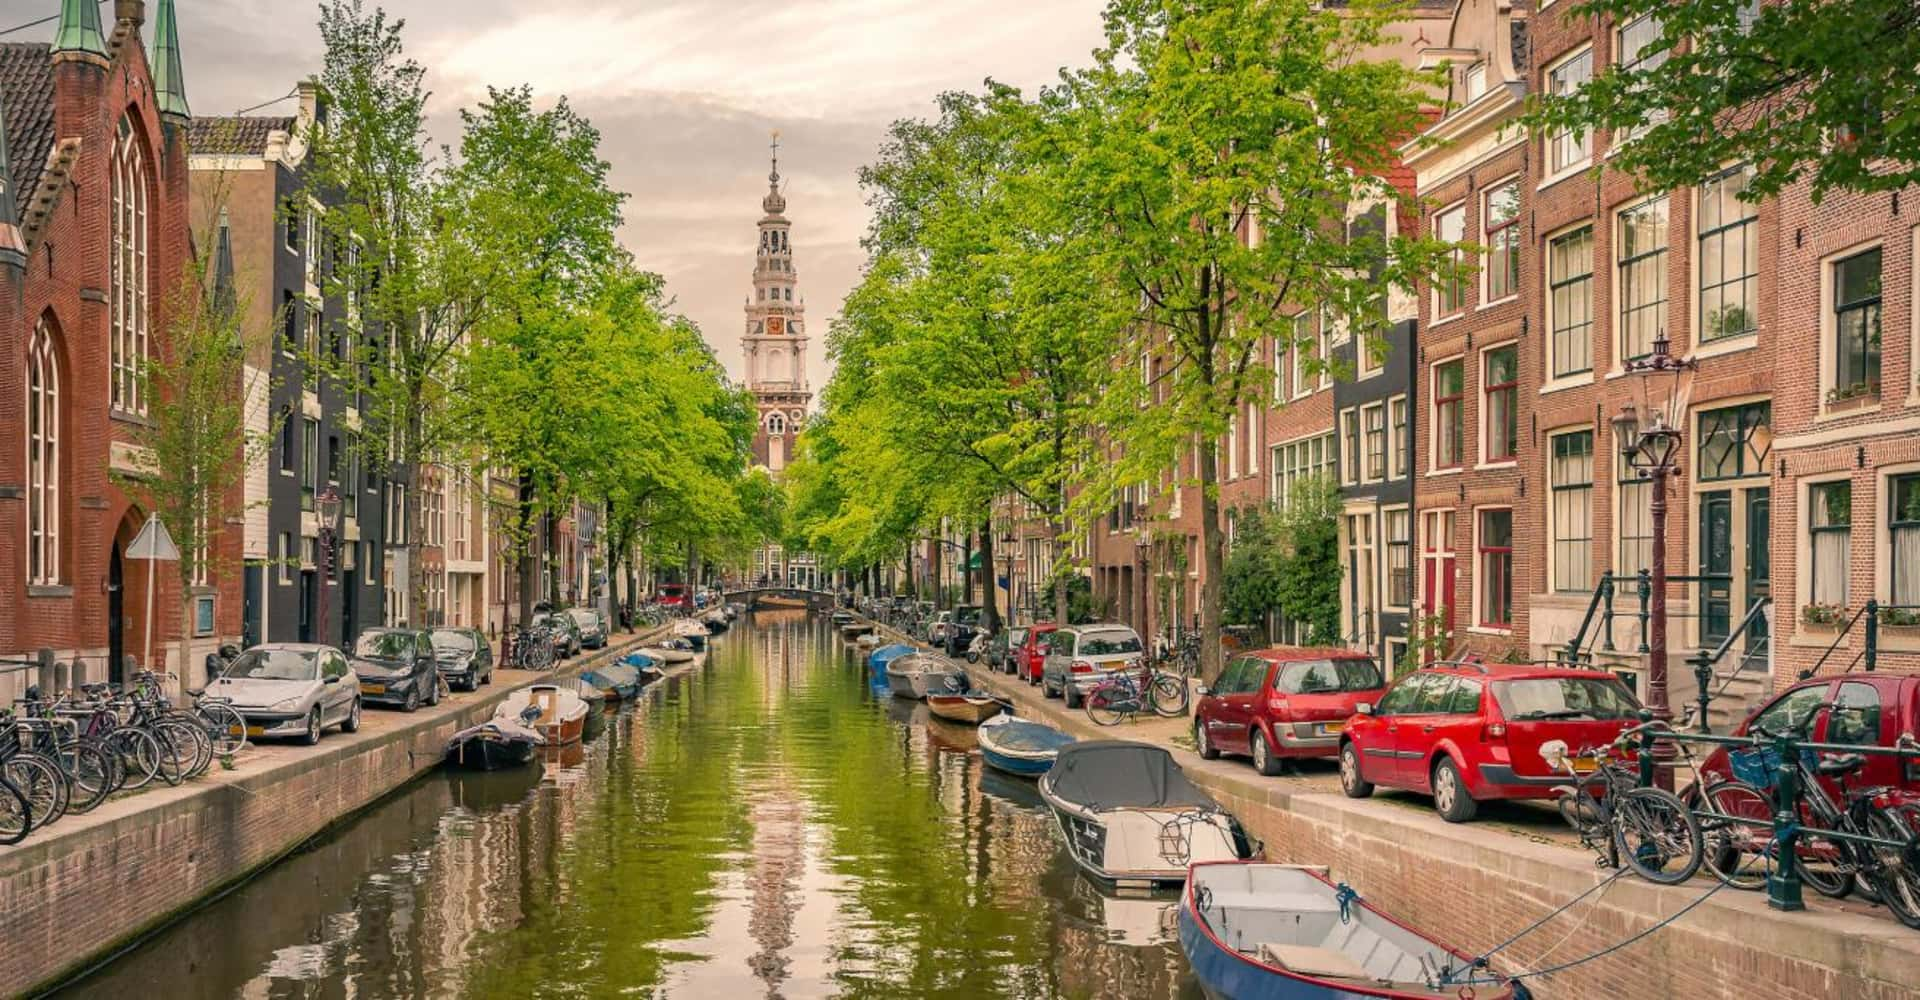 The Jordaan - The Toren Amsterdam - By the Pavilions